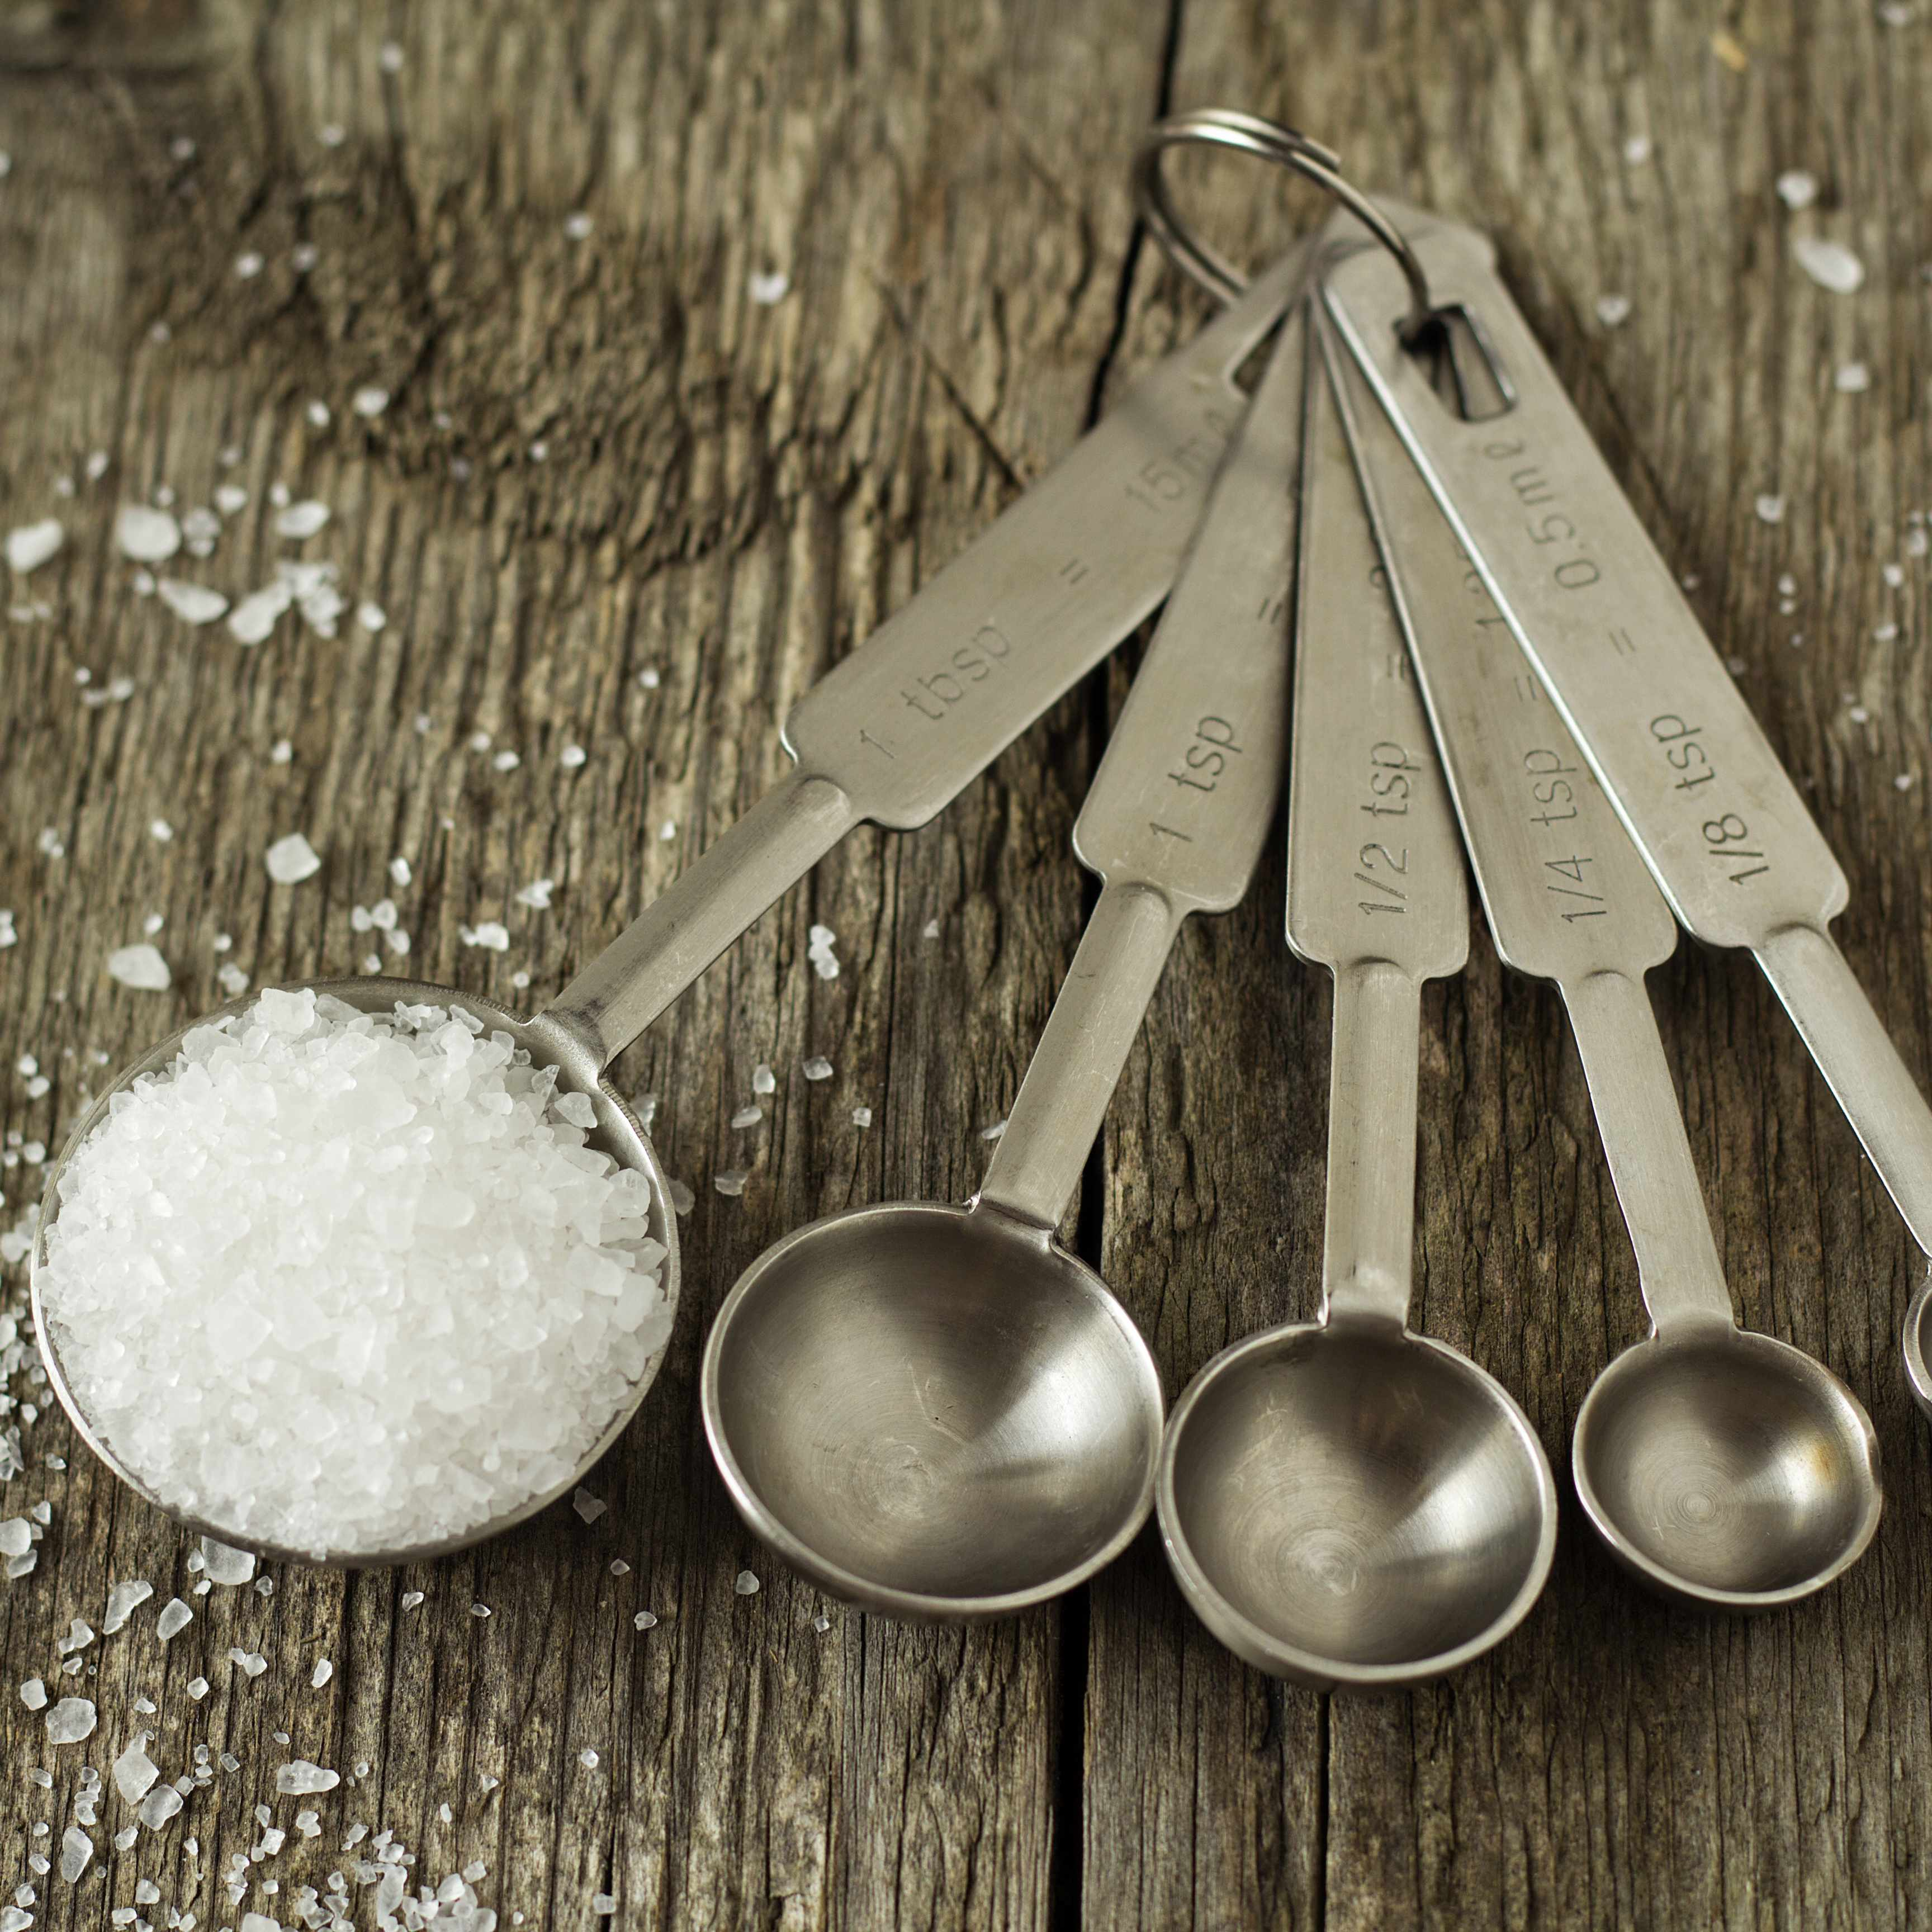 a set of silver measuring spoons on a rough wooden surface, the largest filled with salt spilling over the edges